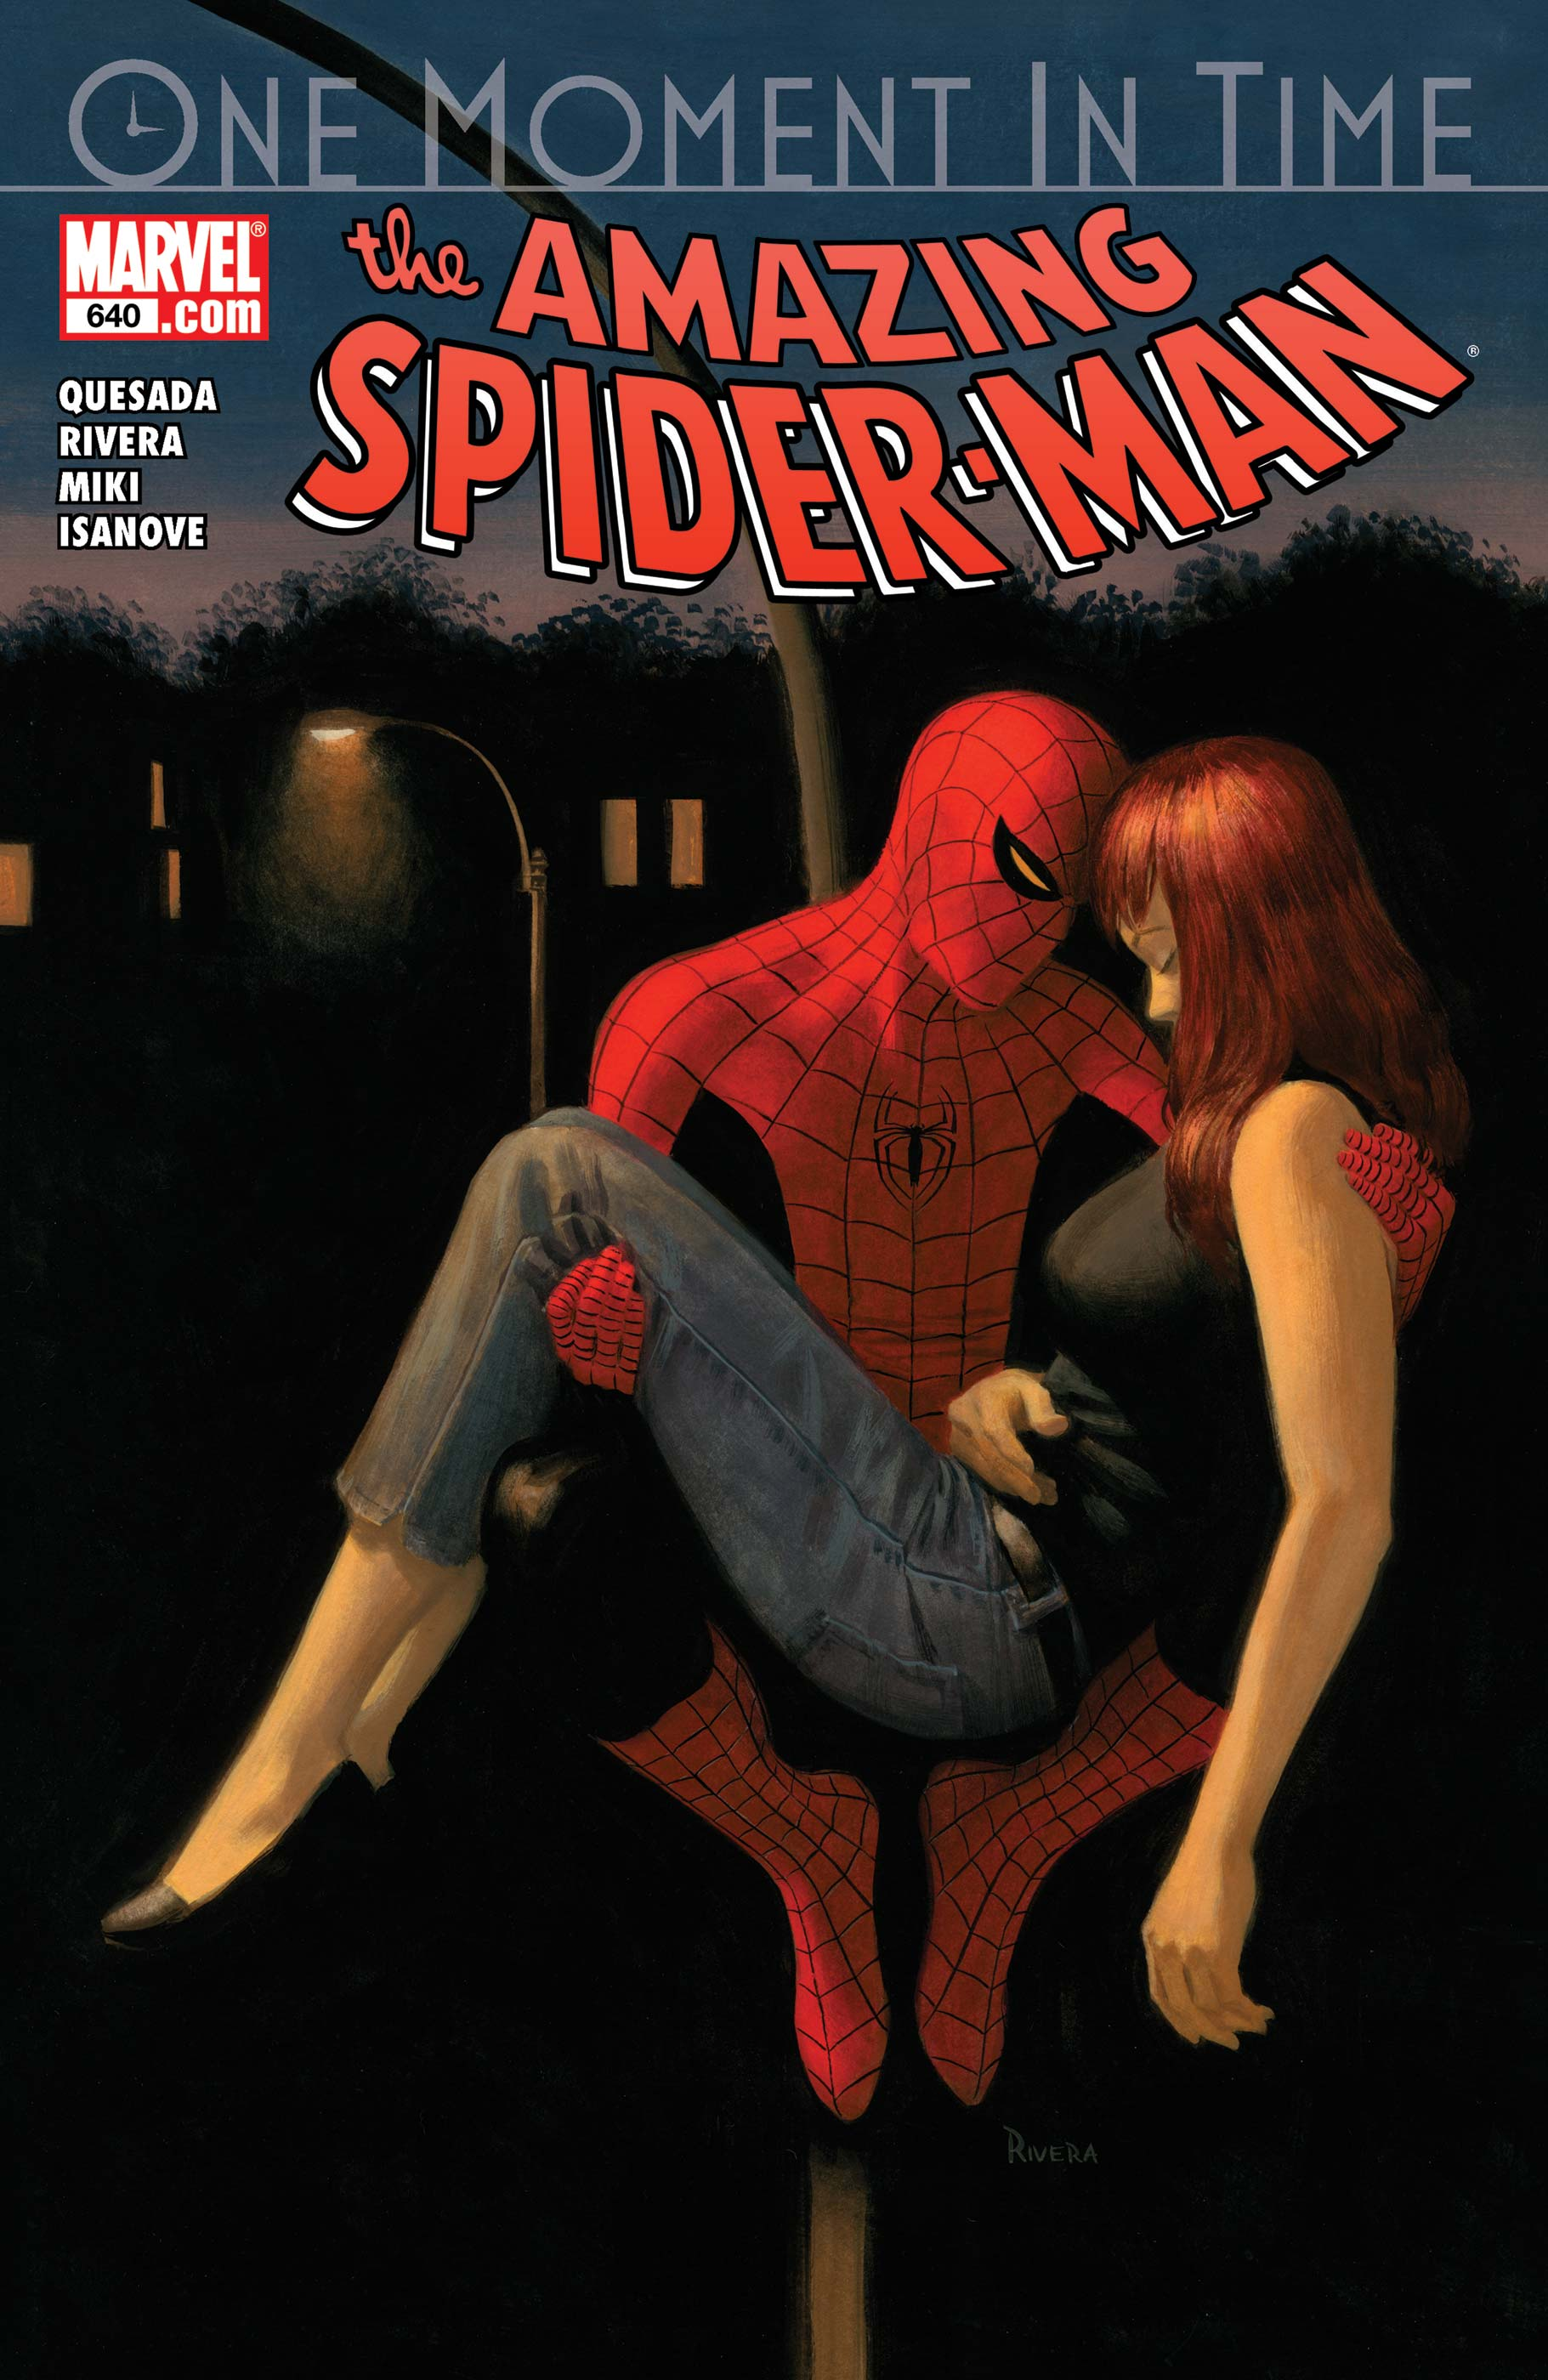 Amazing Spider-Man (1999) #640